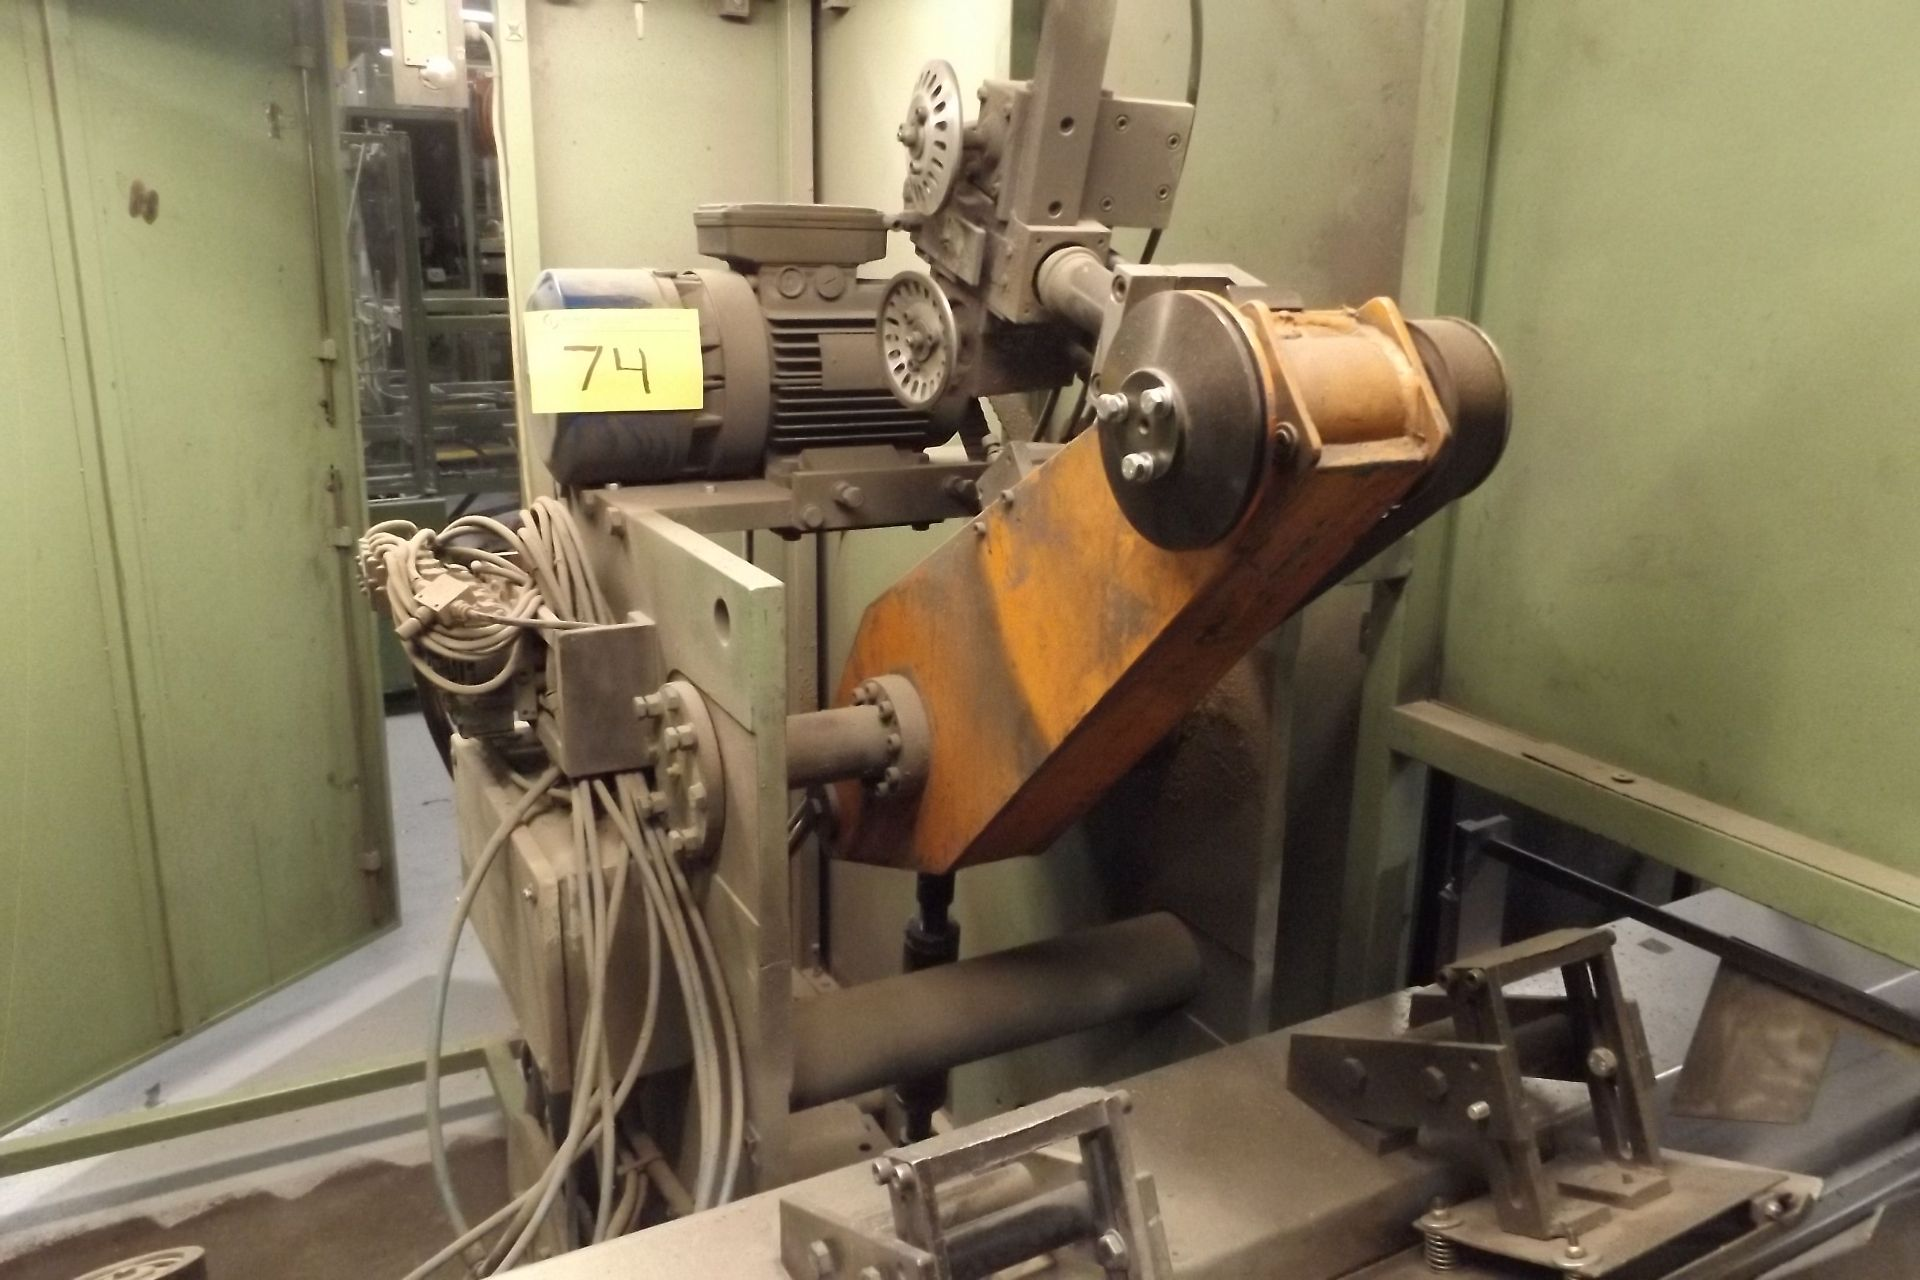 Lot 74 - 1998 ITAL CONVERTING LS-180 EFP Log Saw, s/n 00165, Saw Cut Length / Slitter Position Width: 9.